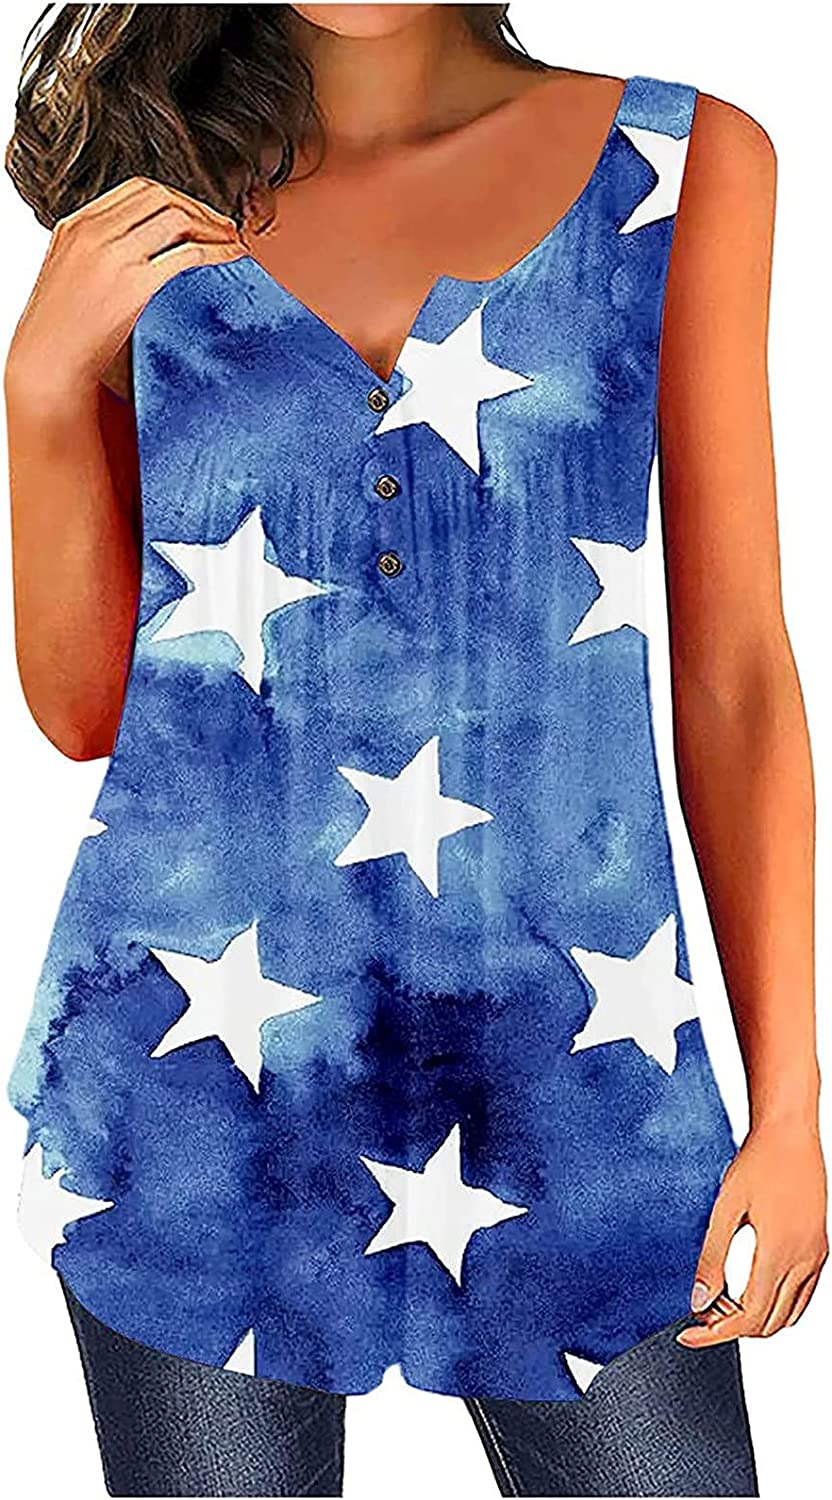 5665 O Neck Vest for Womens Cute Graphic Tank Tops Sleeveless Love Heart Loose Independence Day Printing Relaxed Tops